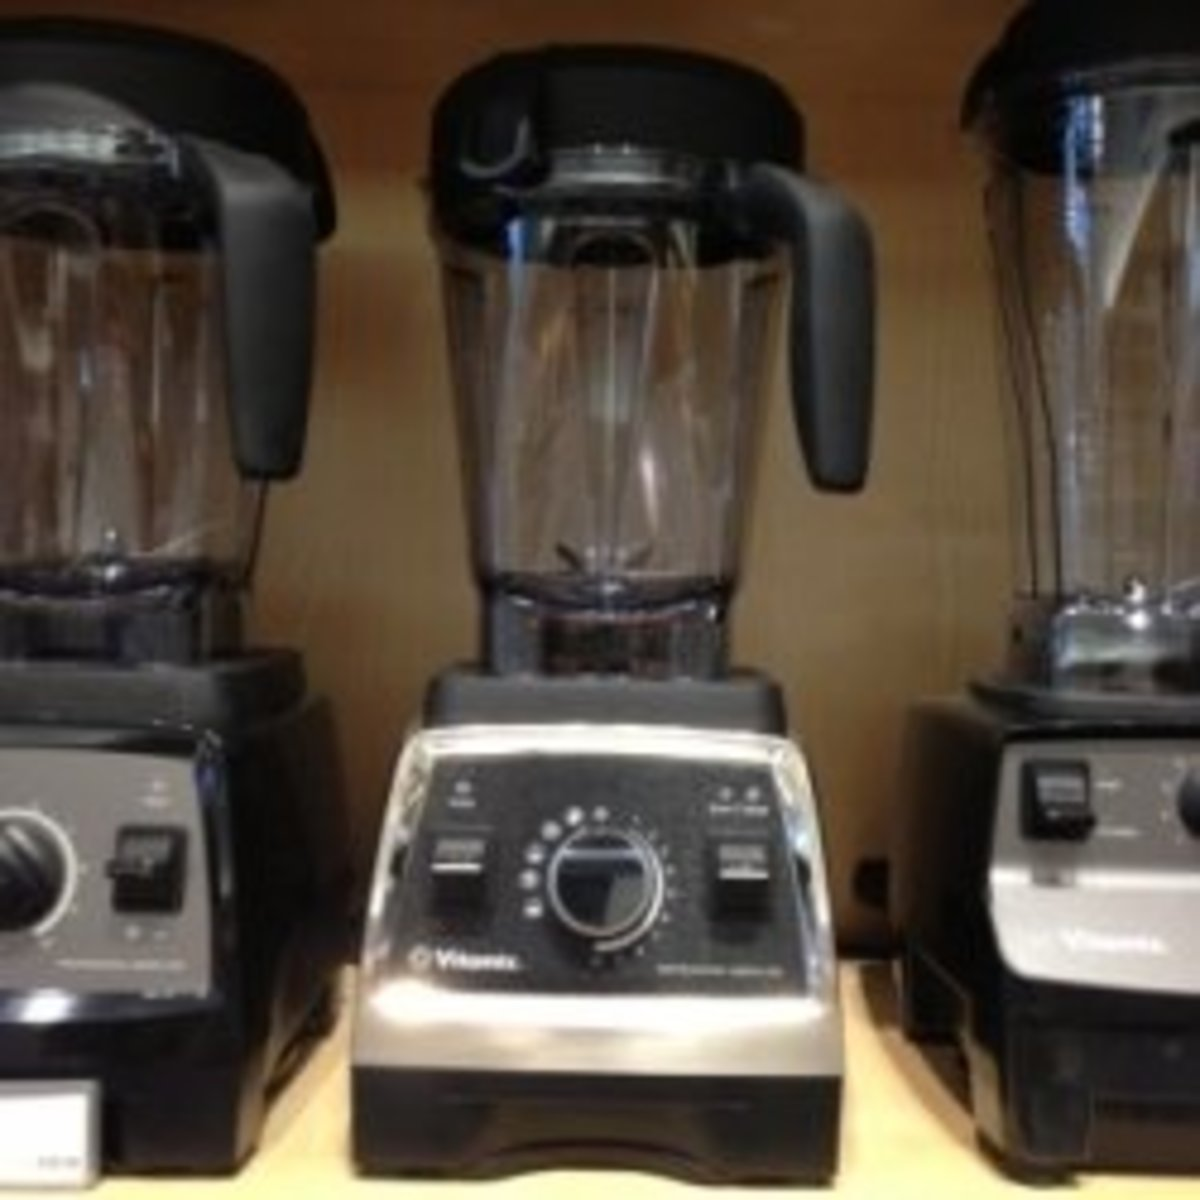 Vitamix 7500 vs 750: Which One Would I Buy?